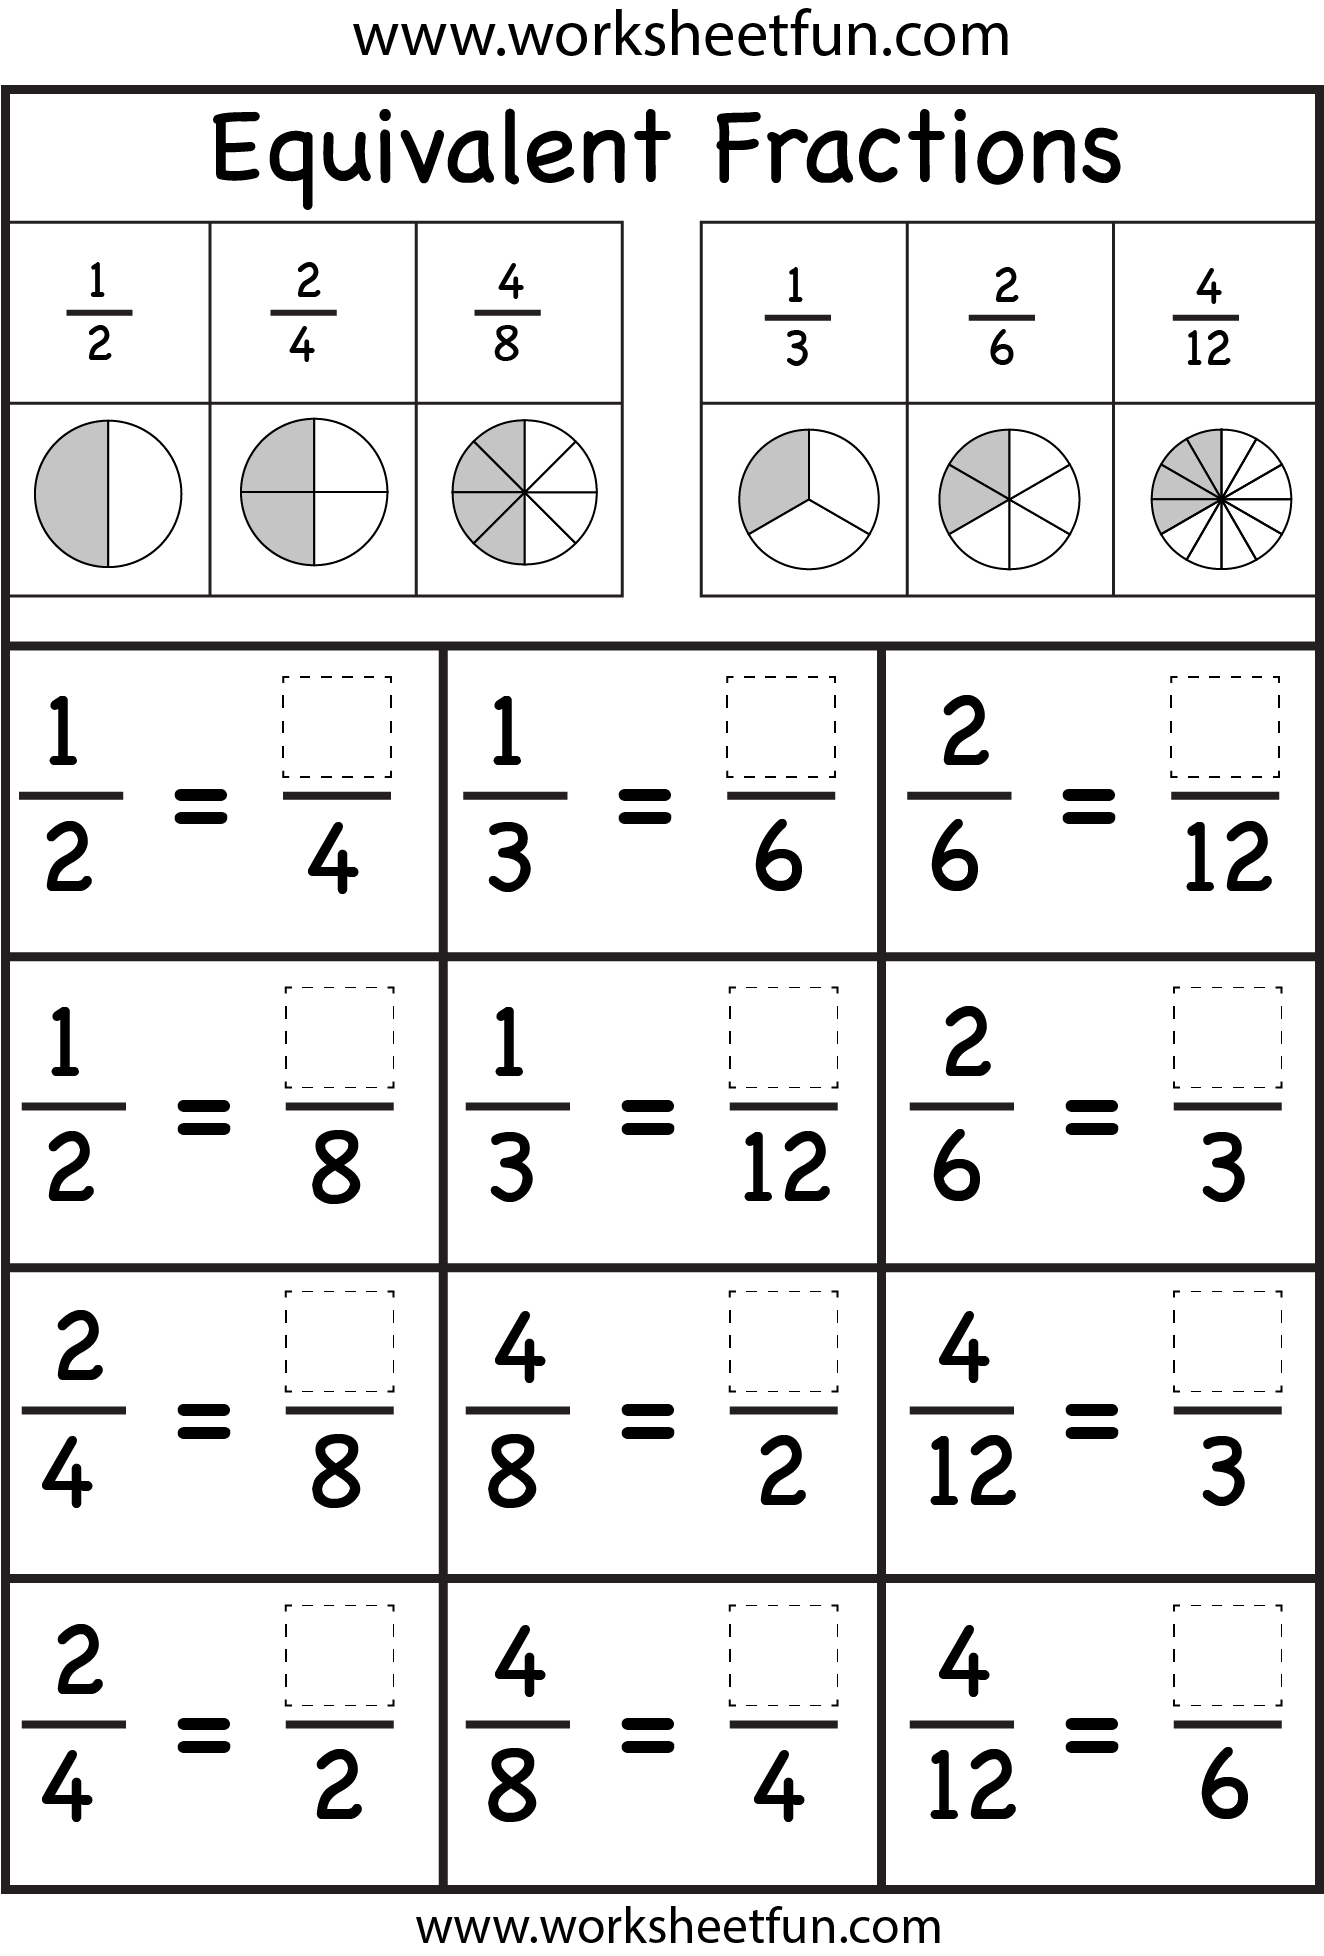 worksheet Fraction Sheet equivalent fractions fraction worksheets pinterest are equal to each other two if they